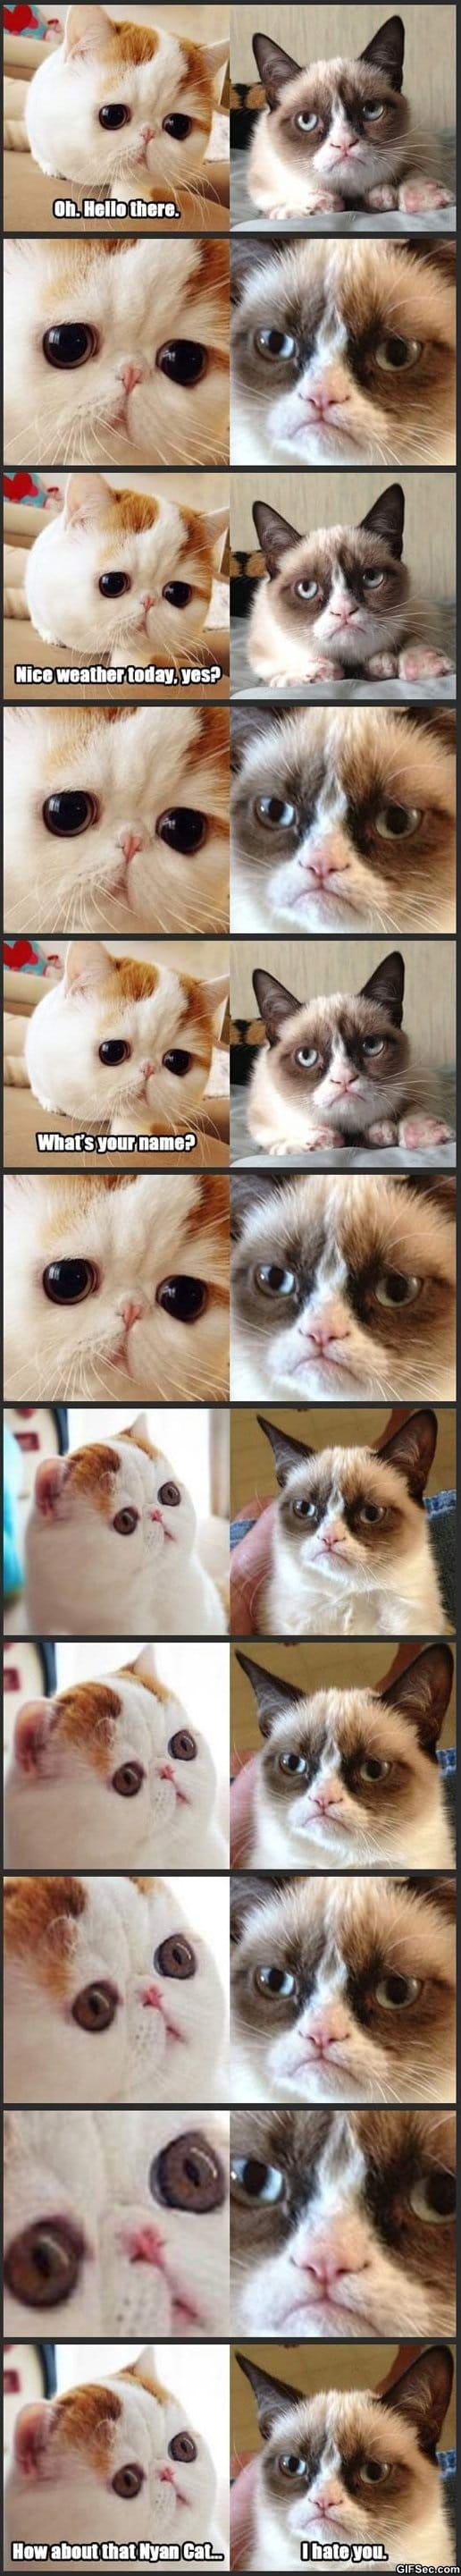 LOL - Snoopy Cat Meets Grumpy Cat